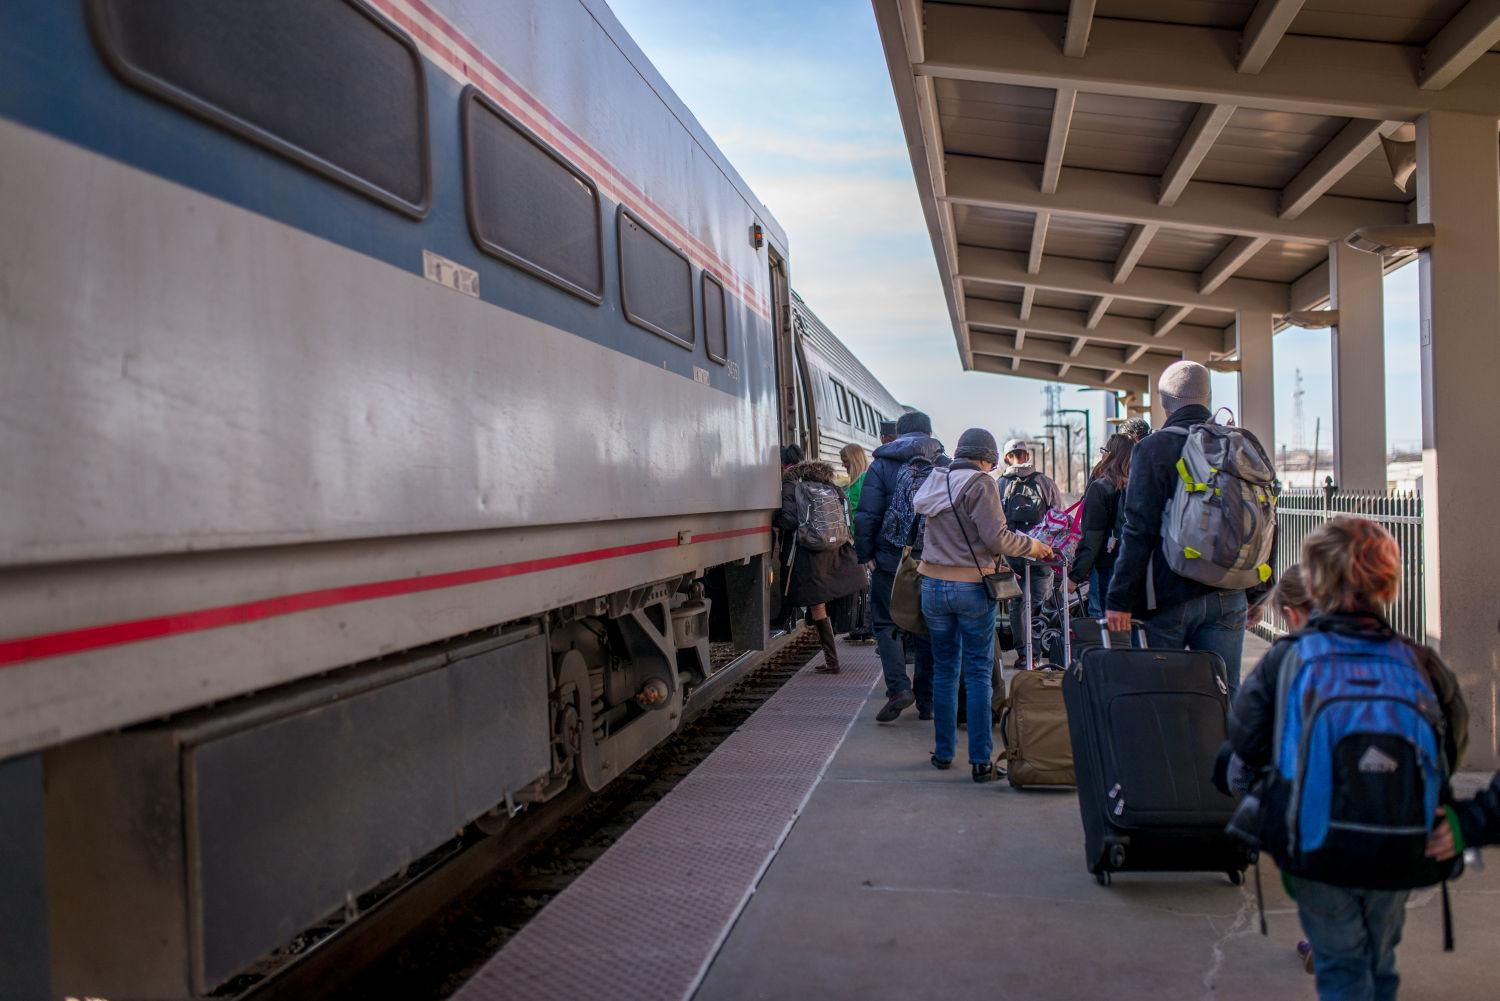 Passengers line up to board the Amtrak train at the Illinois Terminal on Tuesday, March 17, 2015.